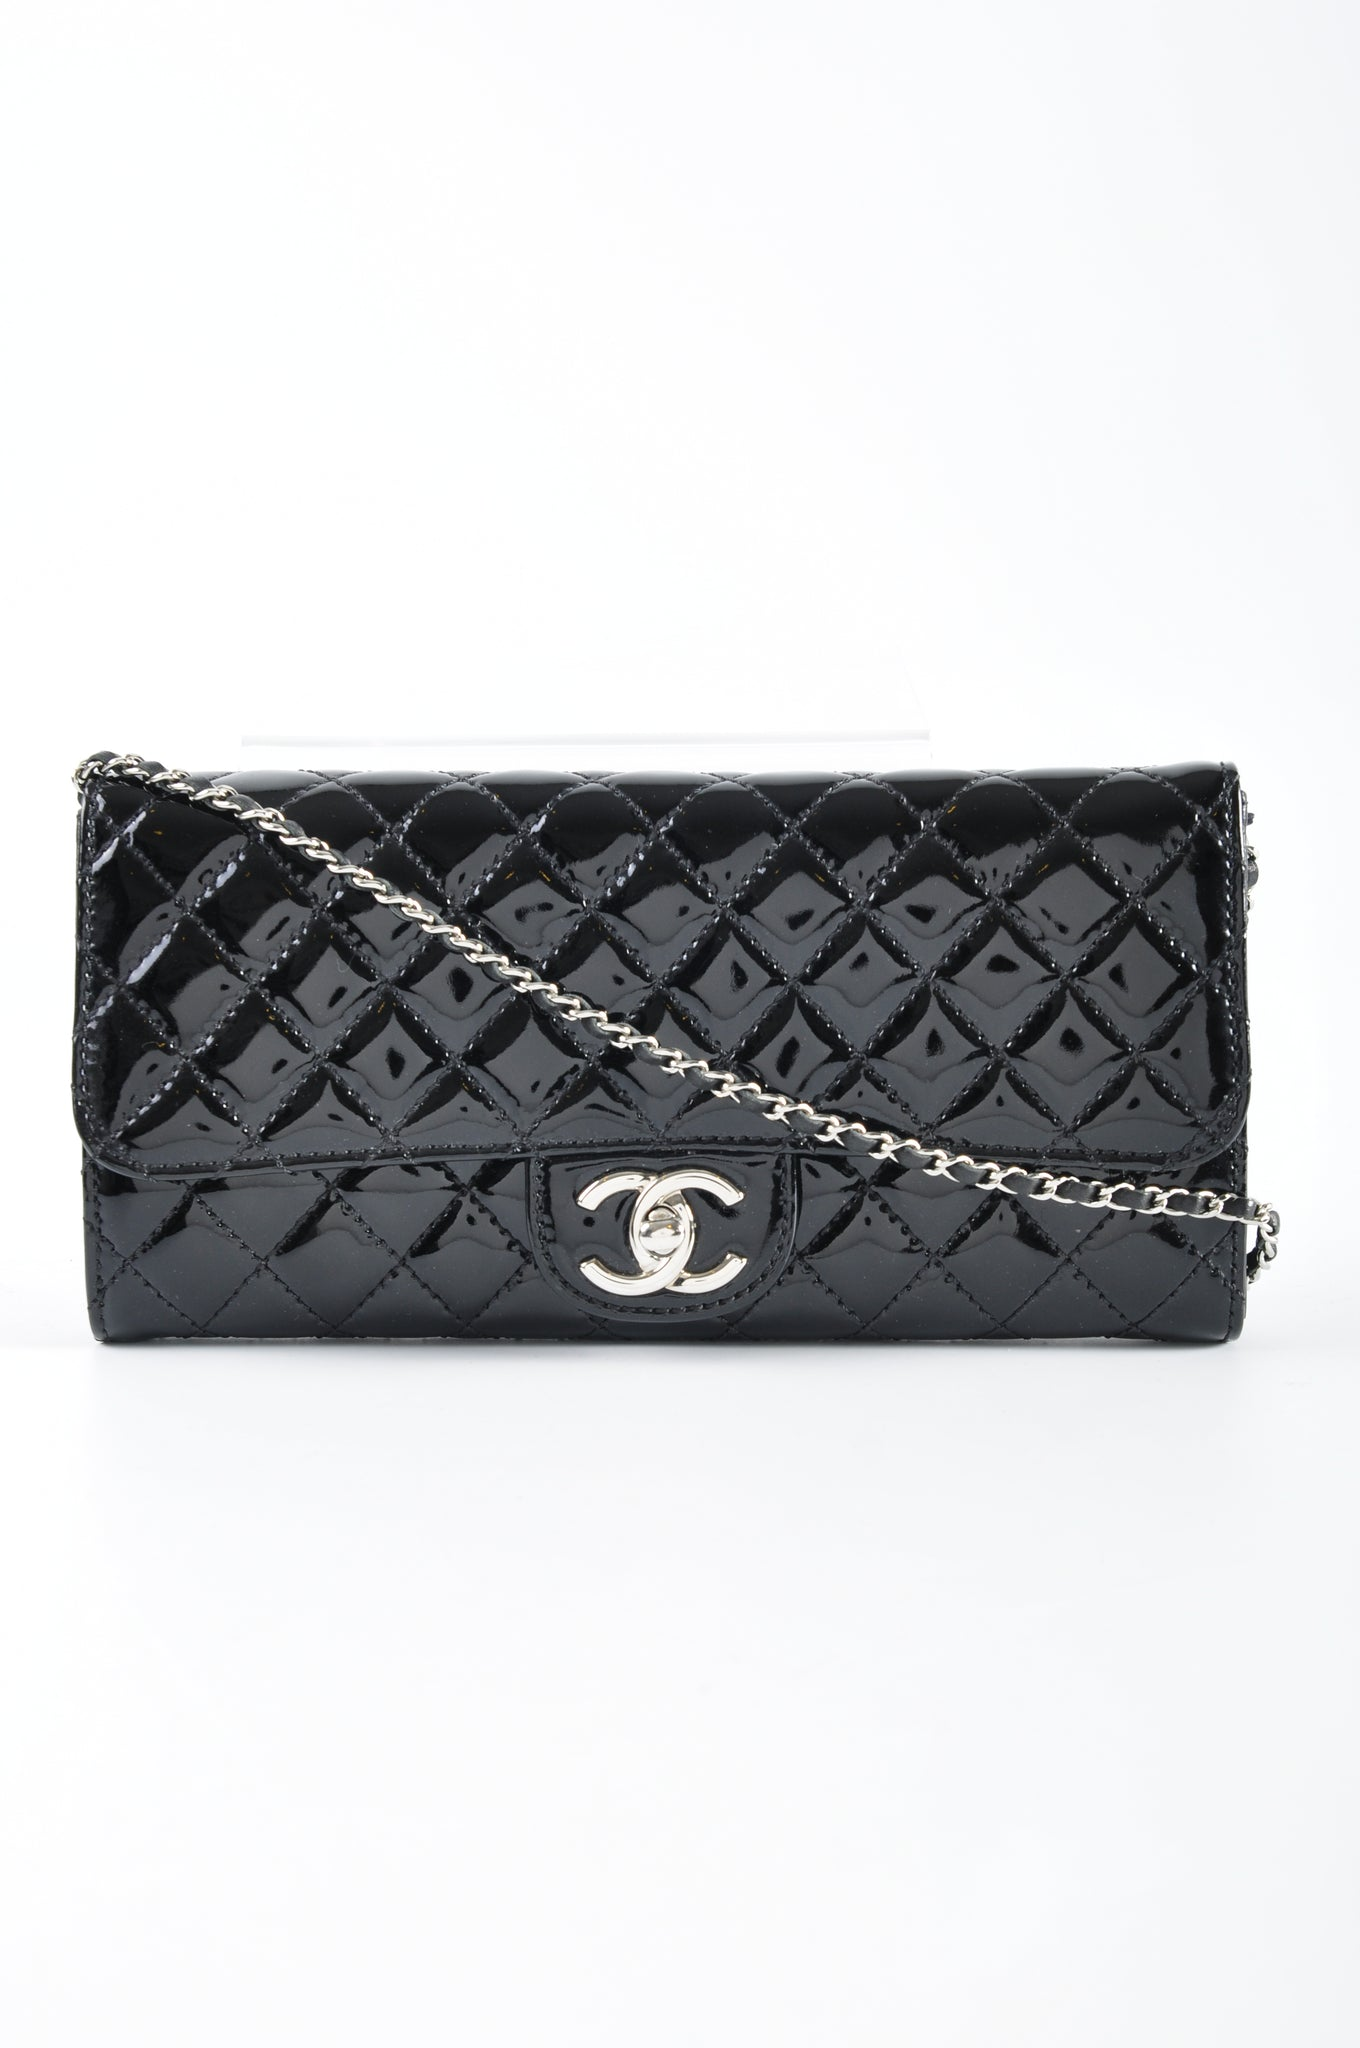 Chanel Black Patent Leather WOC 14277095 - Glampot